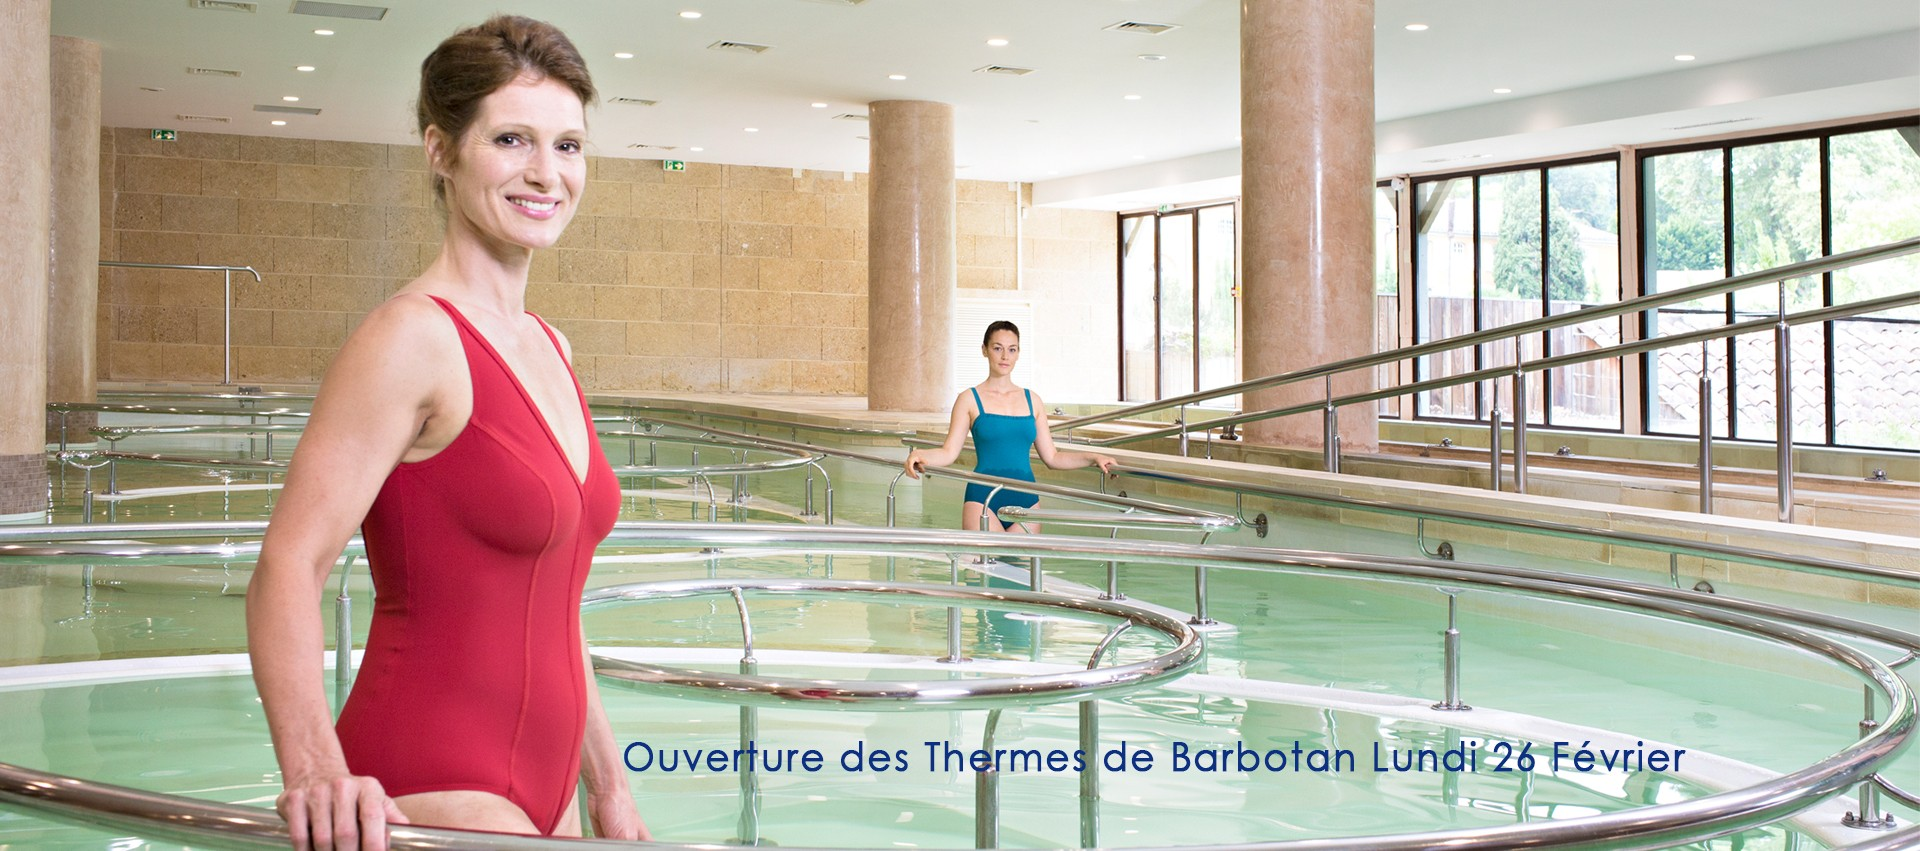 Office de tourisme du grand armagnac barbotan les - Office de tourisme barbotan les thermes ...